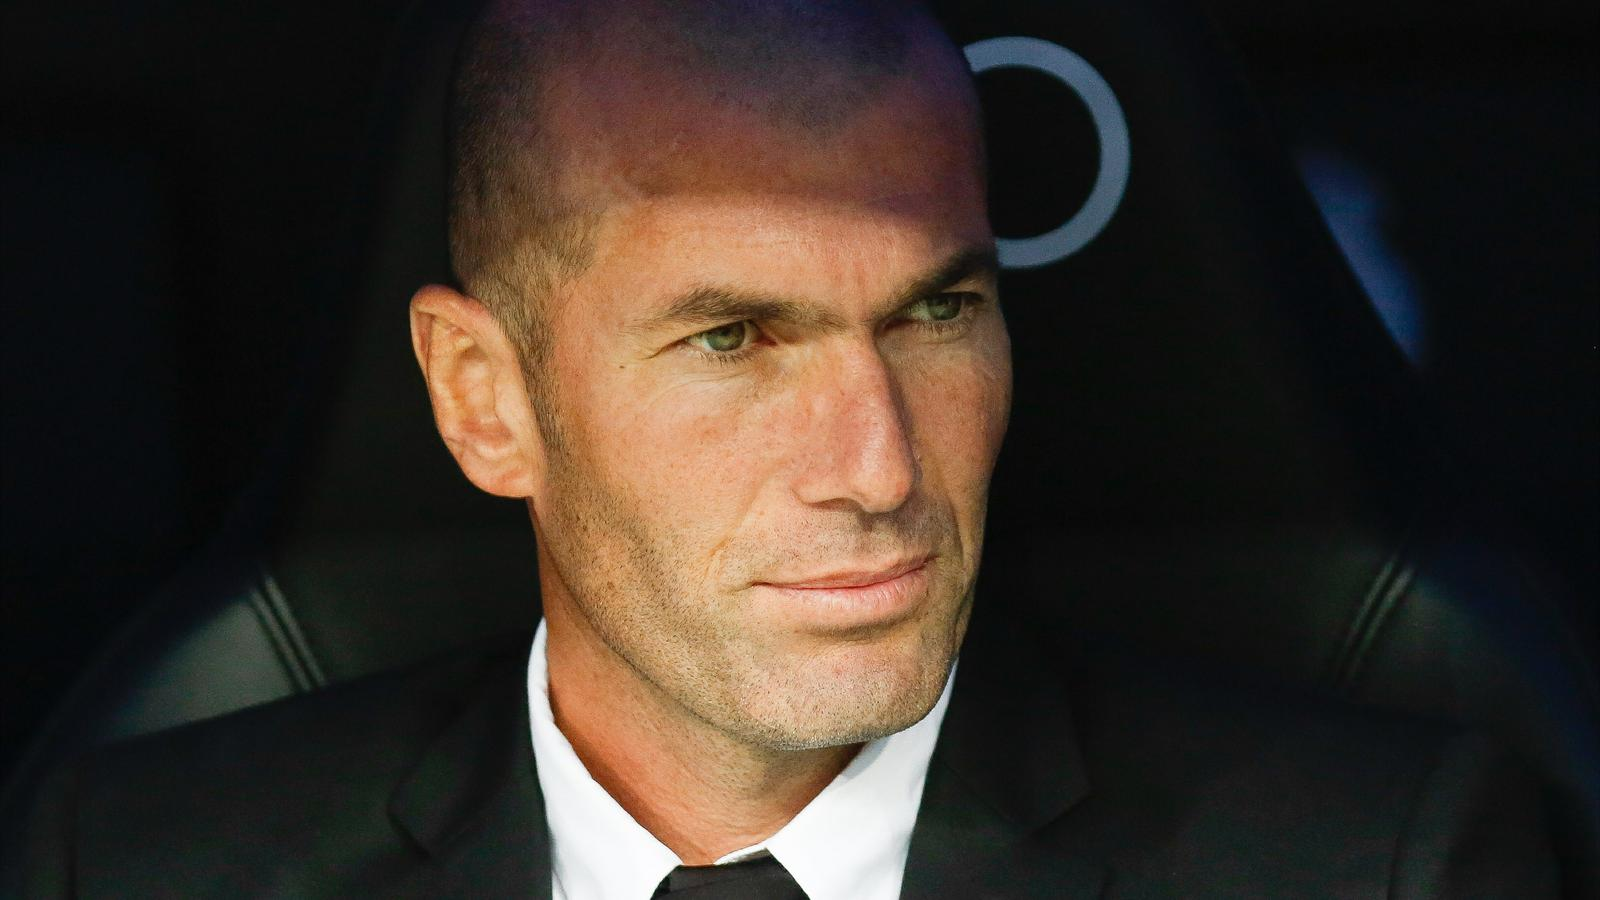 Zinédine Zidane (Real Madrid), 2013-2014